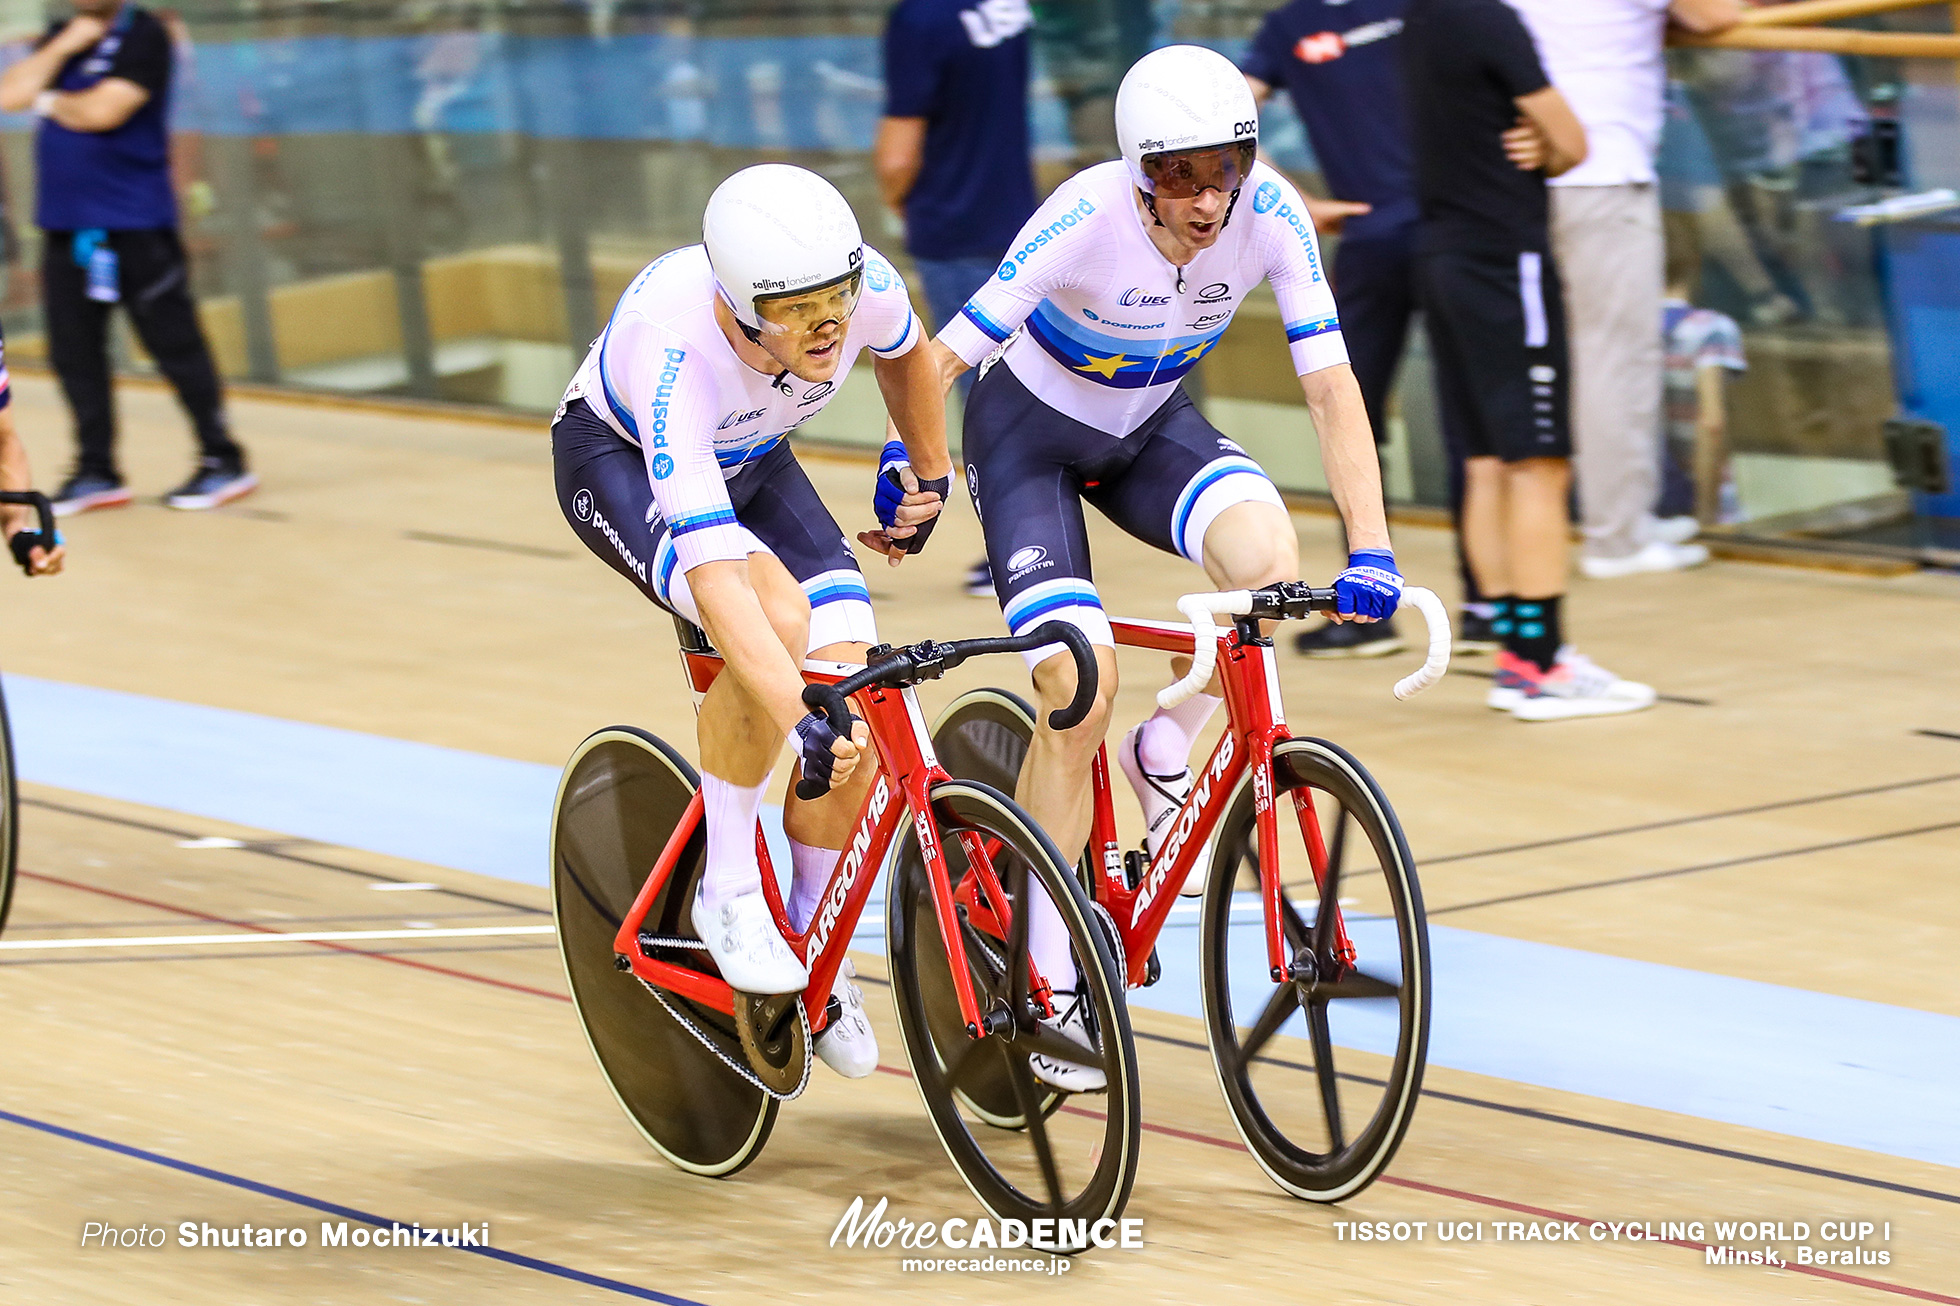 ラッセ・ノーマン・ハンセン HANSEN Lasse Norman ミカエル・モルコフ MORKOV Michael Men's Madison / TISSOT UCI TRACK CYCLING WORLD CUP I, Minsk, Beralus